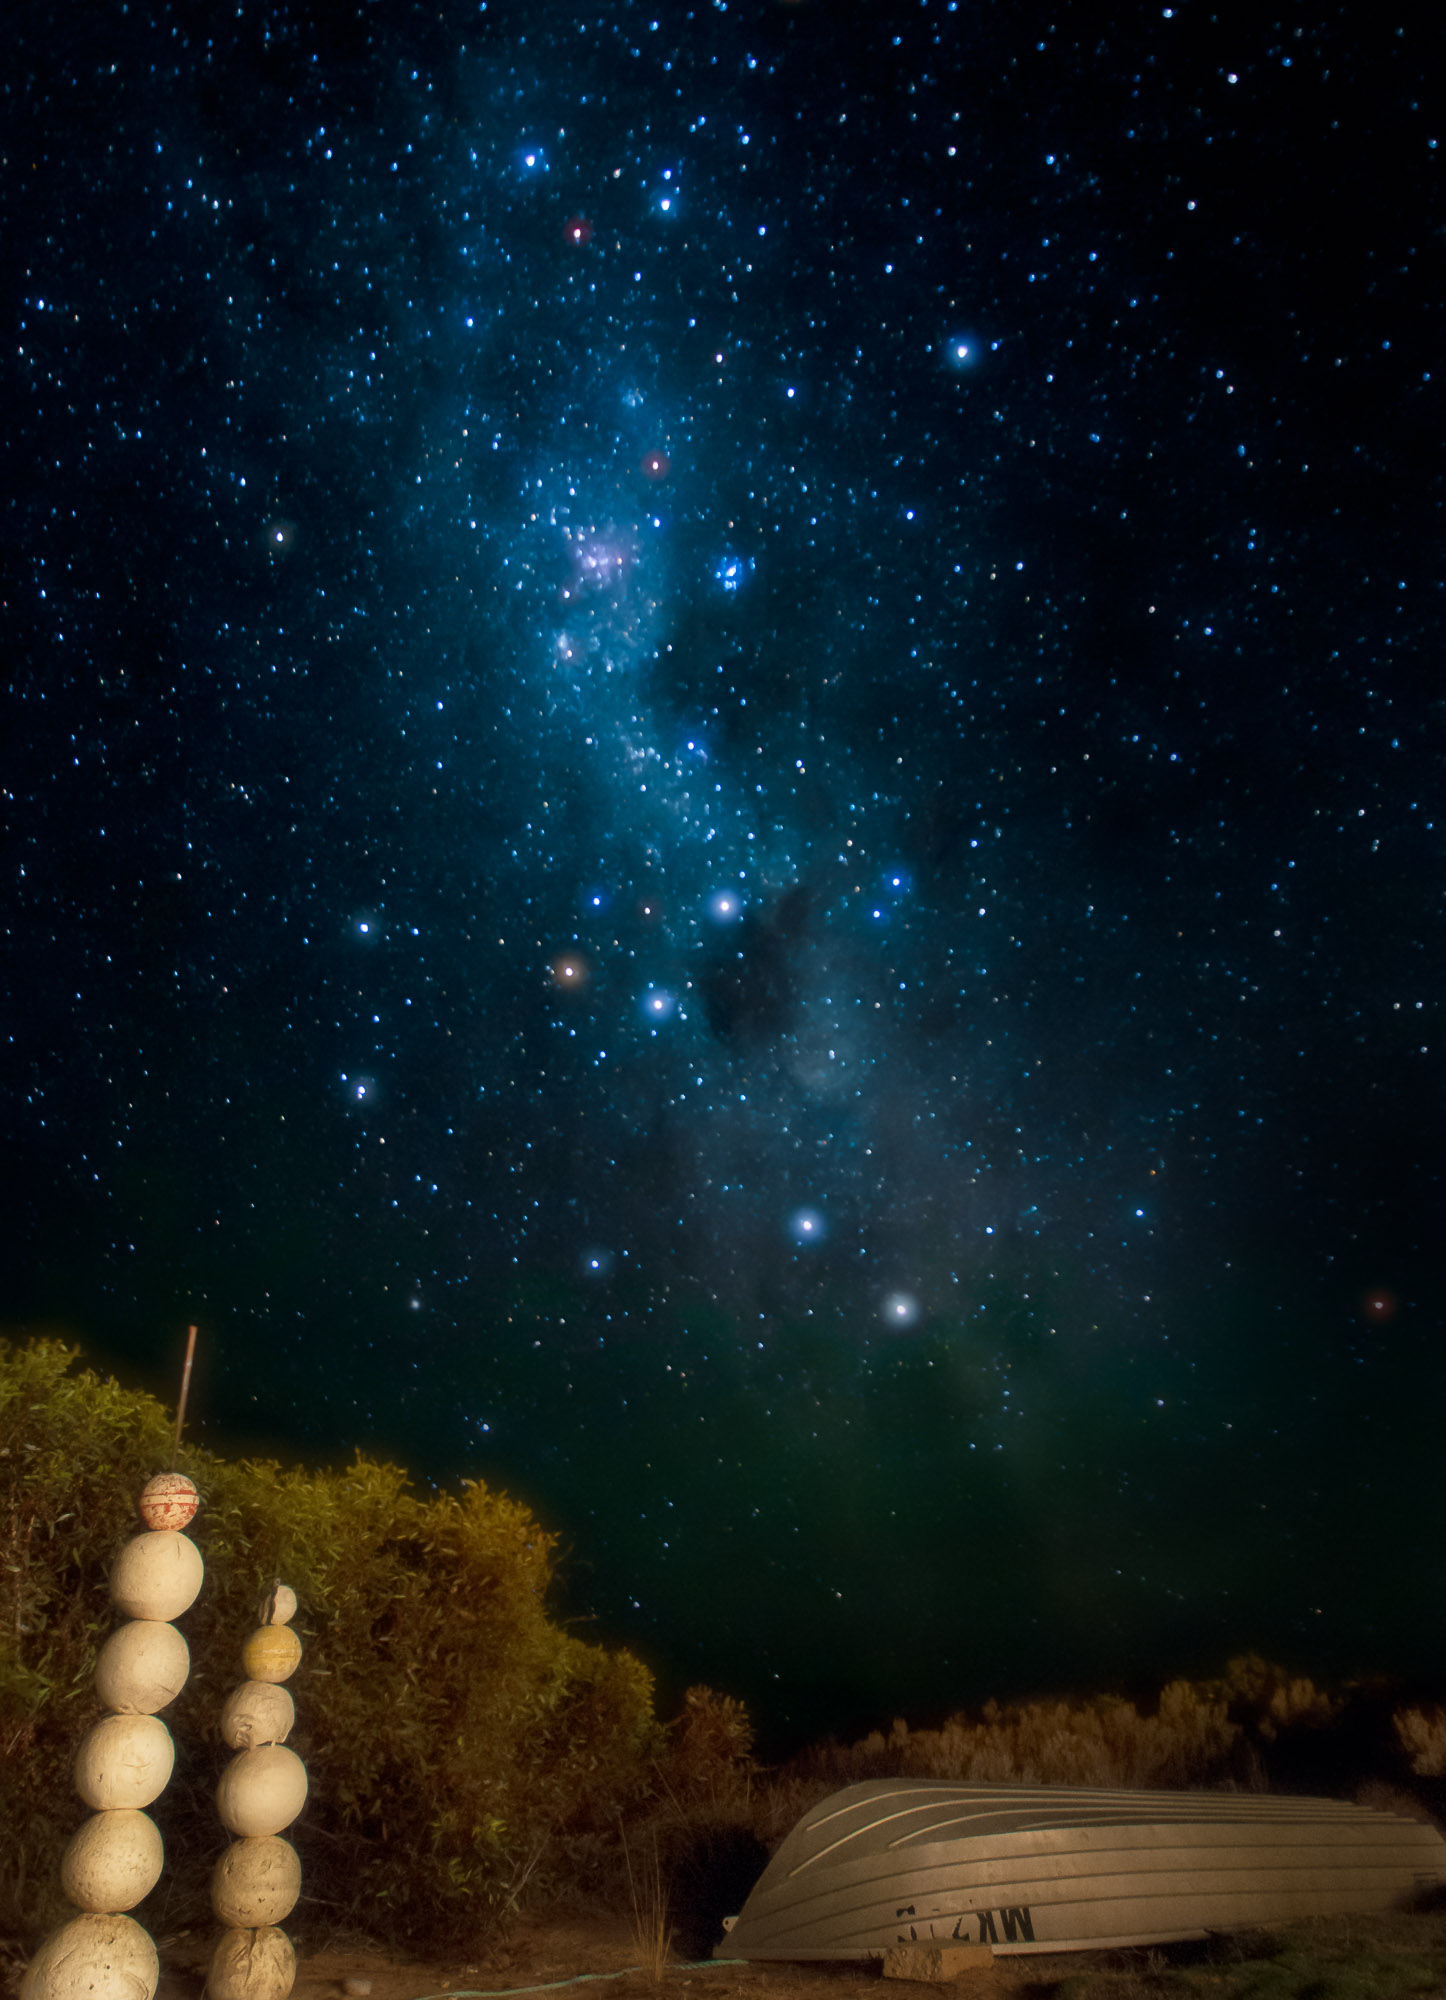 The Milky Way, Southern Cross, and Coalsack Nebula - Arno Bay, South Australia